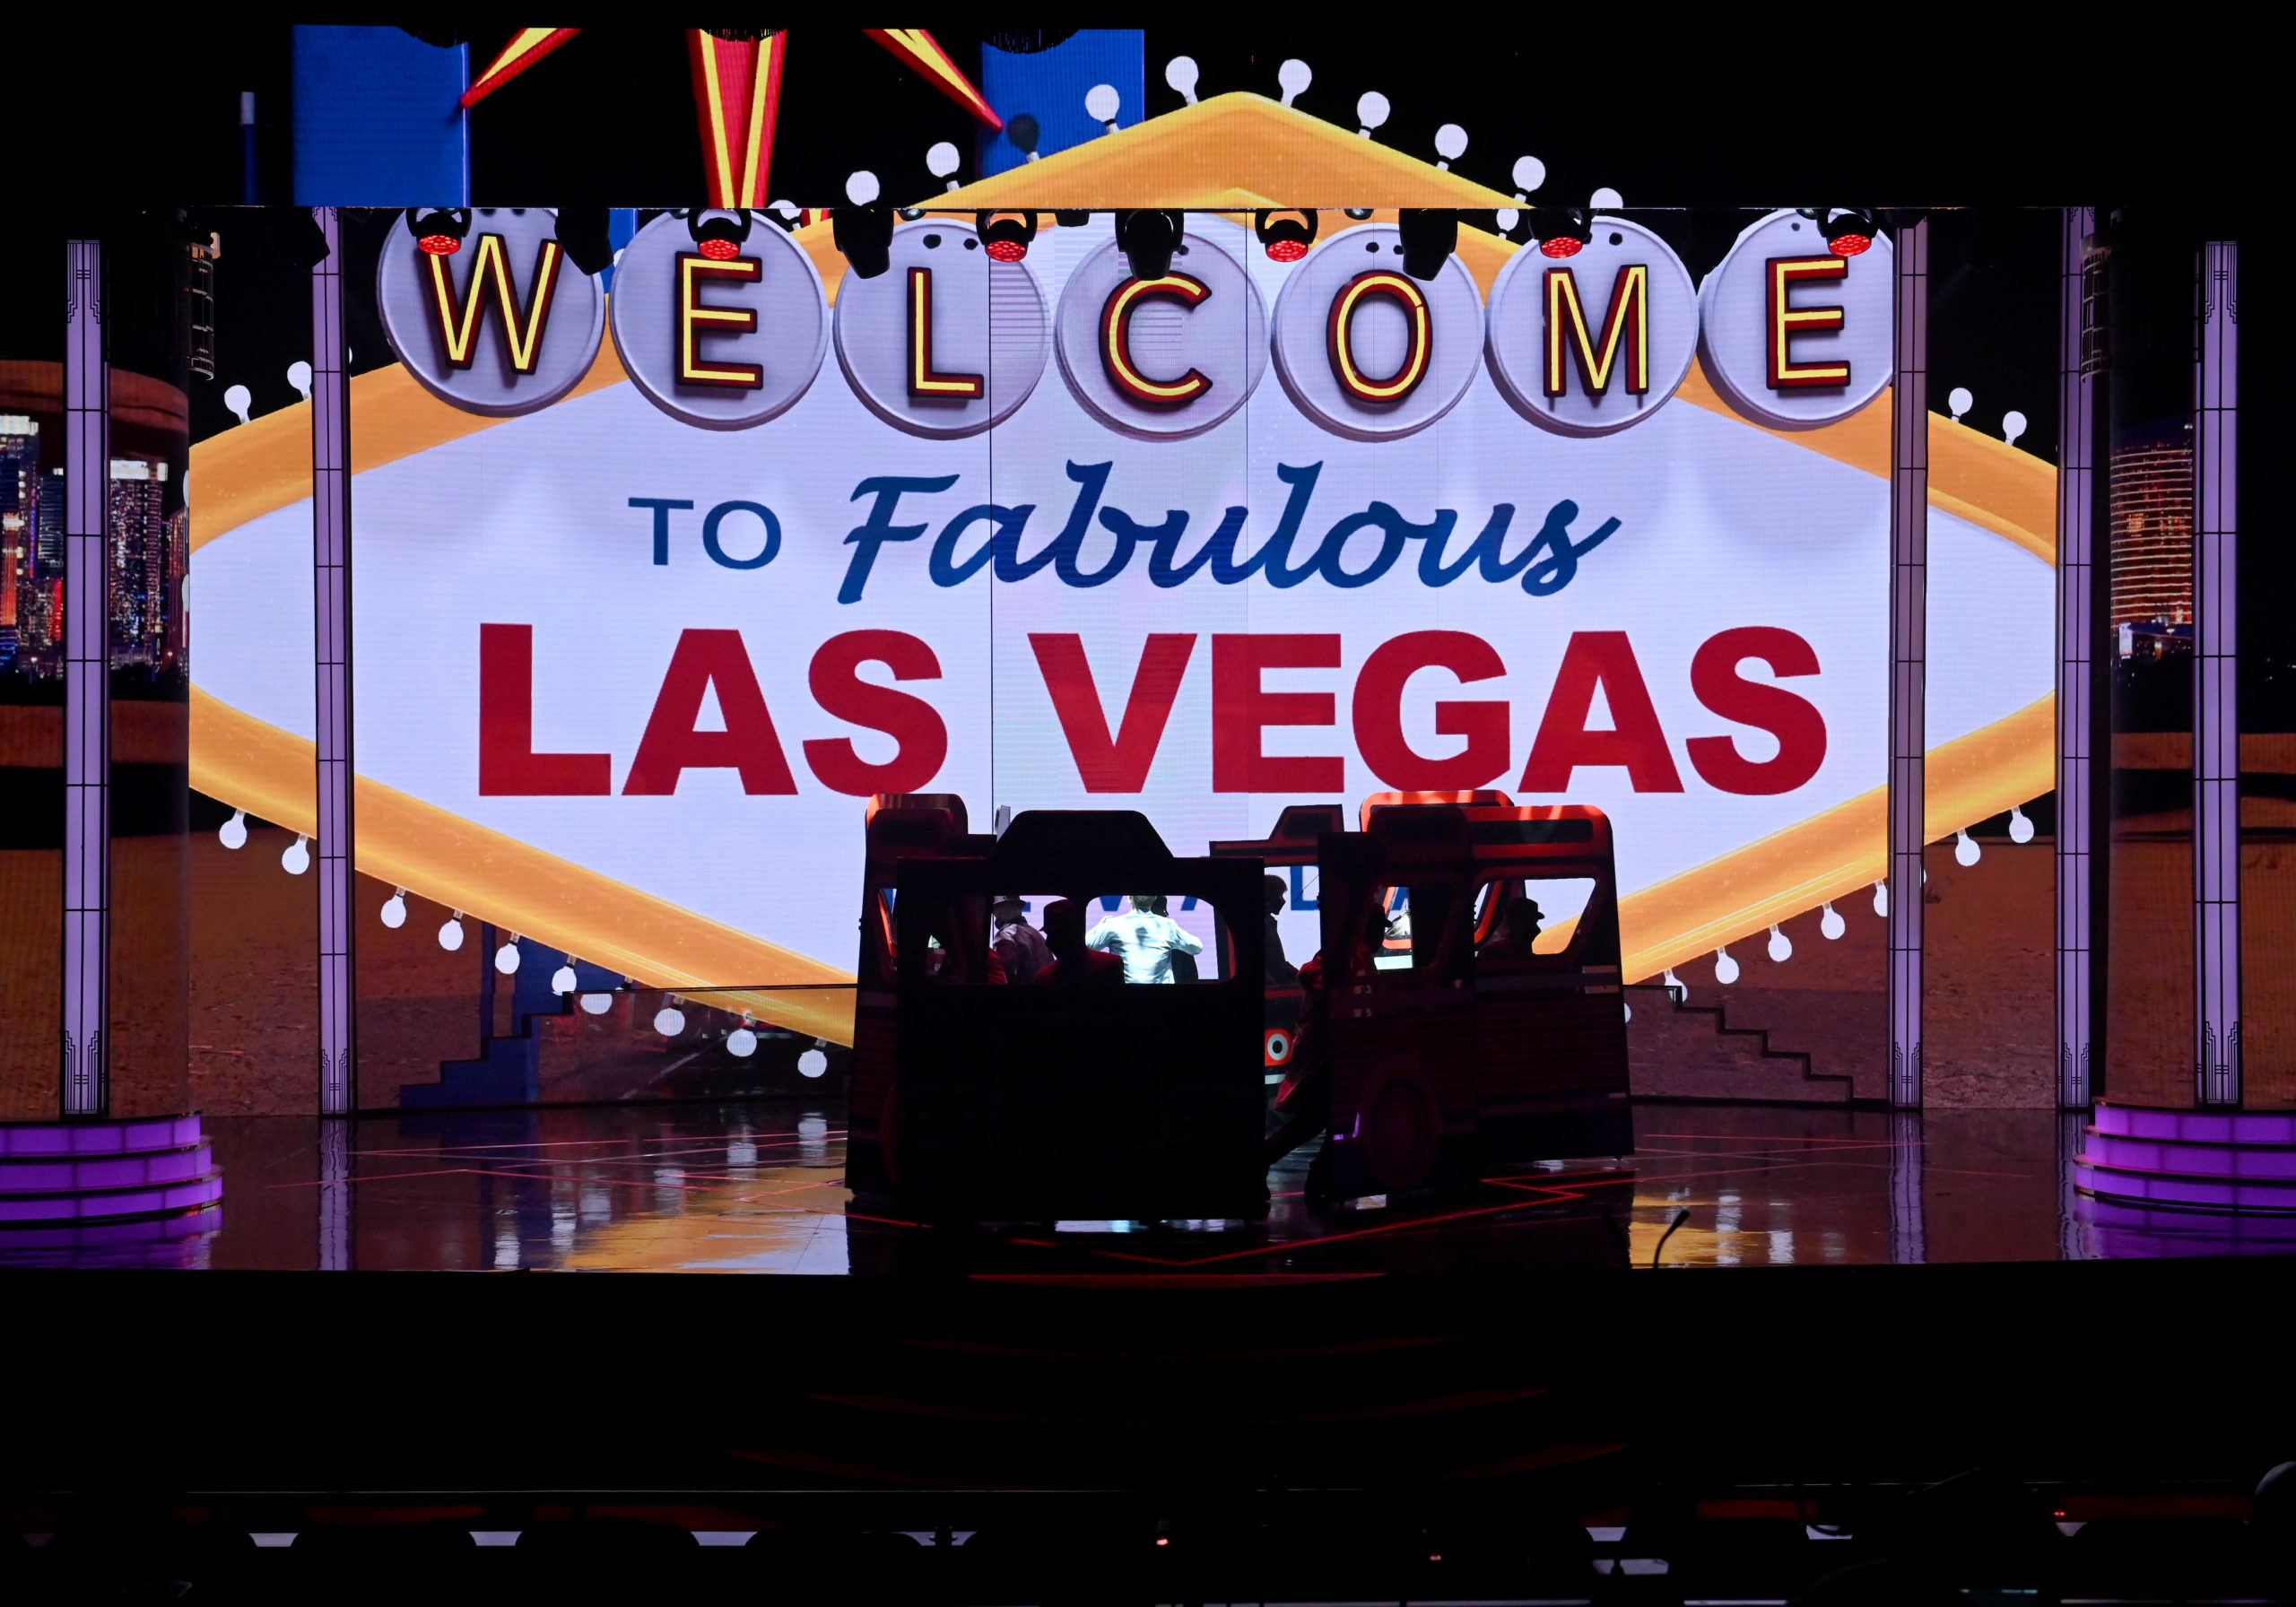 "LAS VEGAS, NEVADA - NOVEMBER 28: A prop bus is silhouetted onstage in front of a projection of the Welcome to Fabulous Las Vegas sign during the ""EXTRAVAGANZA - The Vegas Spectacular"" show at the Jubilee Theater at Bally's Las Vegas Hotel & Casino on November 28, 2020 in Las Vegas, Nevada. The production opened on March 14, 2020, for only one show before all entertainment on the Las Vegas Strip was shut down to fight the coronavirus (COVID-19) pandemic. The show reopened this week just as a three-week statewide pause went into effect due to surging COVID-19 numbers, forcing producers to adjust to new capacity restrictions limiting audience sizes to 50 people. (Photo by Ethan Miller/Getty Images)"